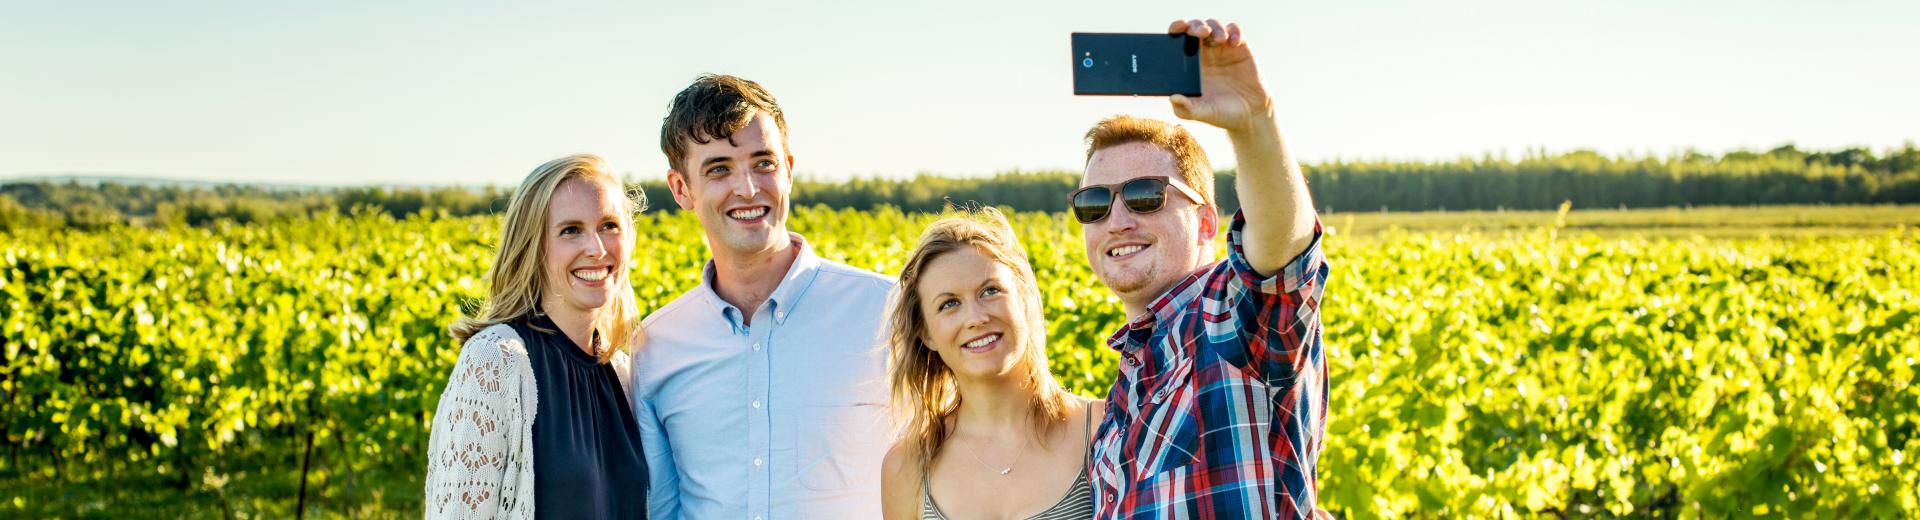 Group posing for photo at a vineyard in Nova Scotia